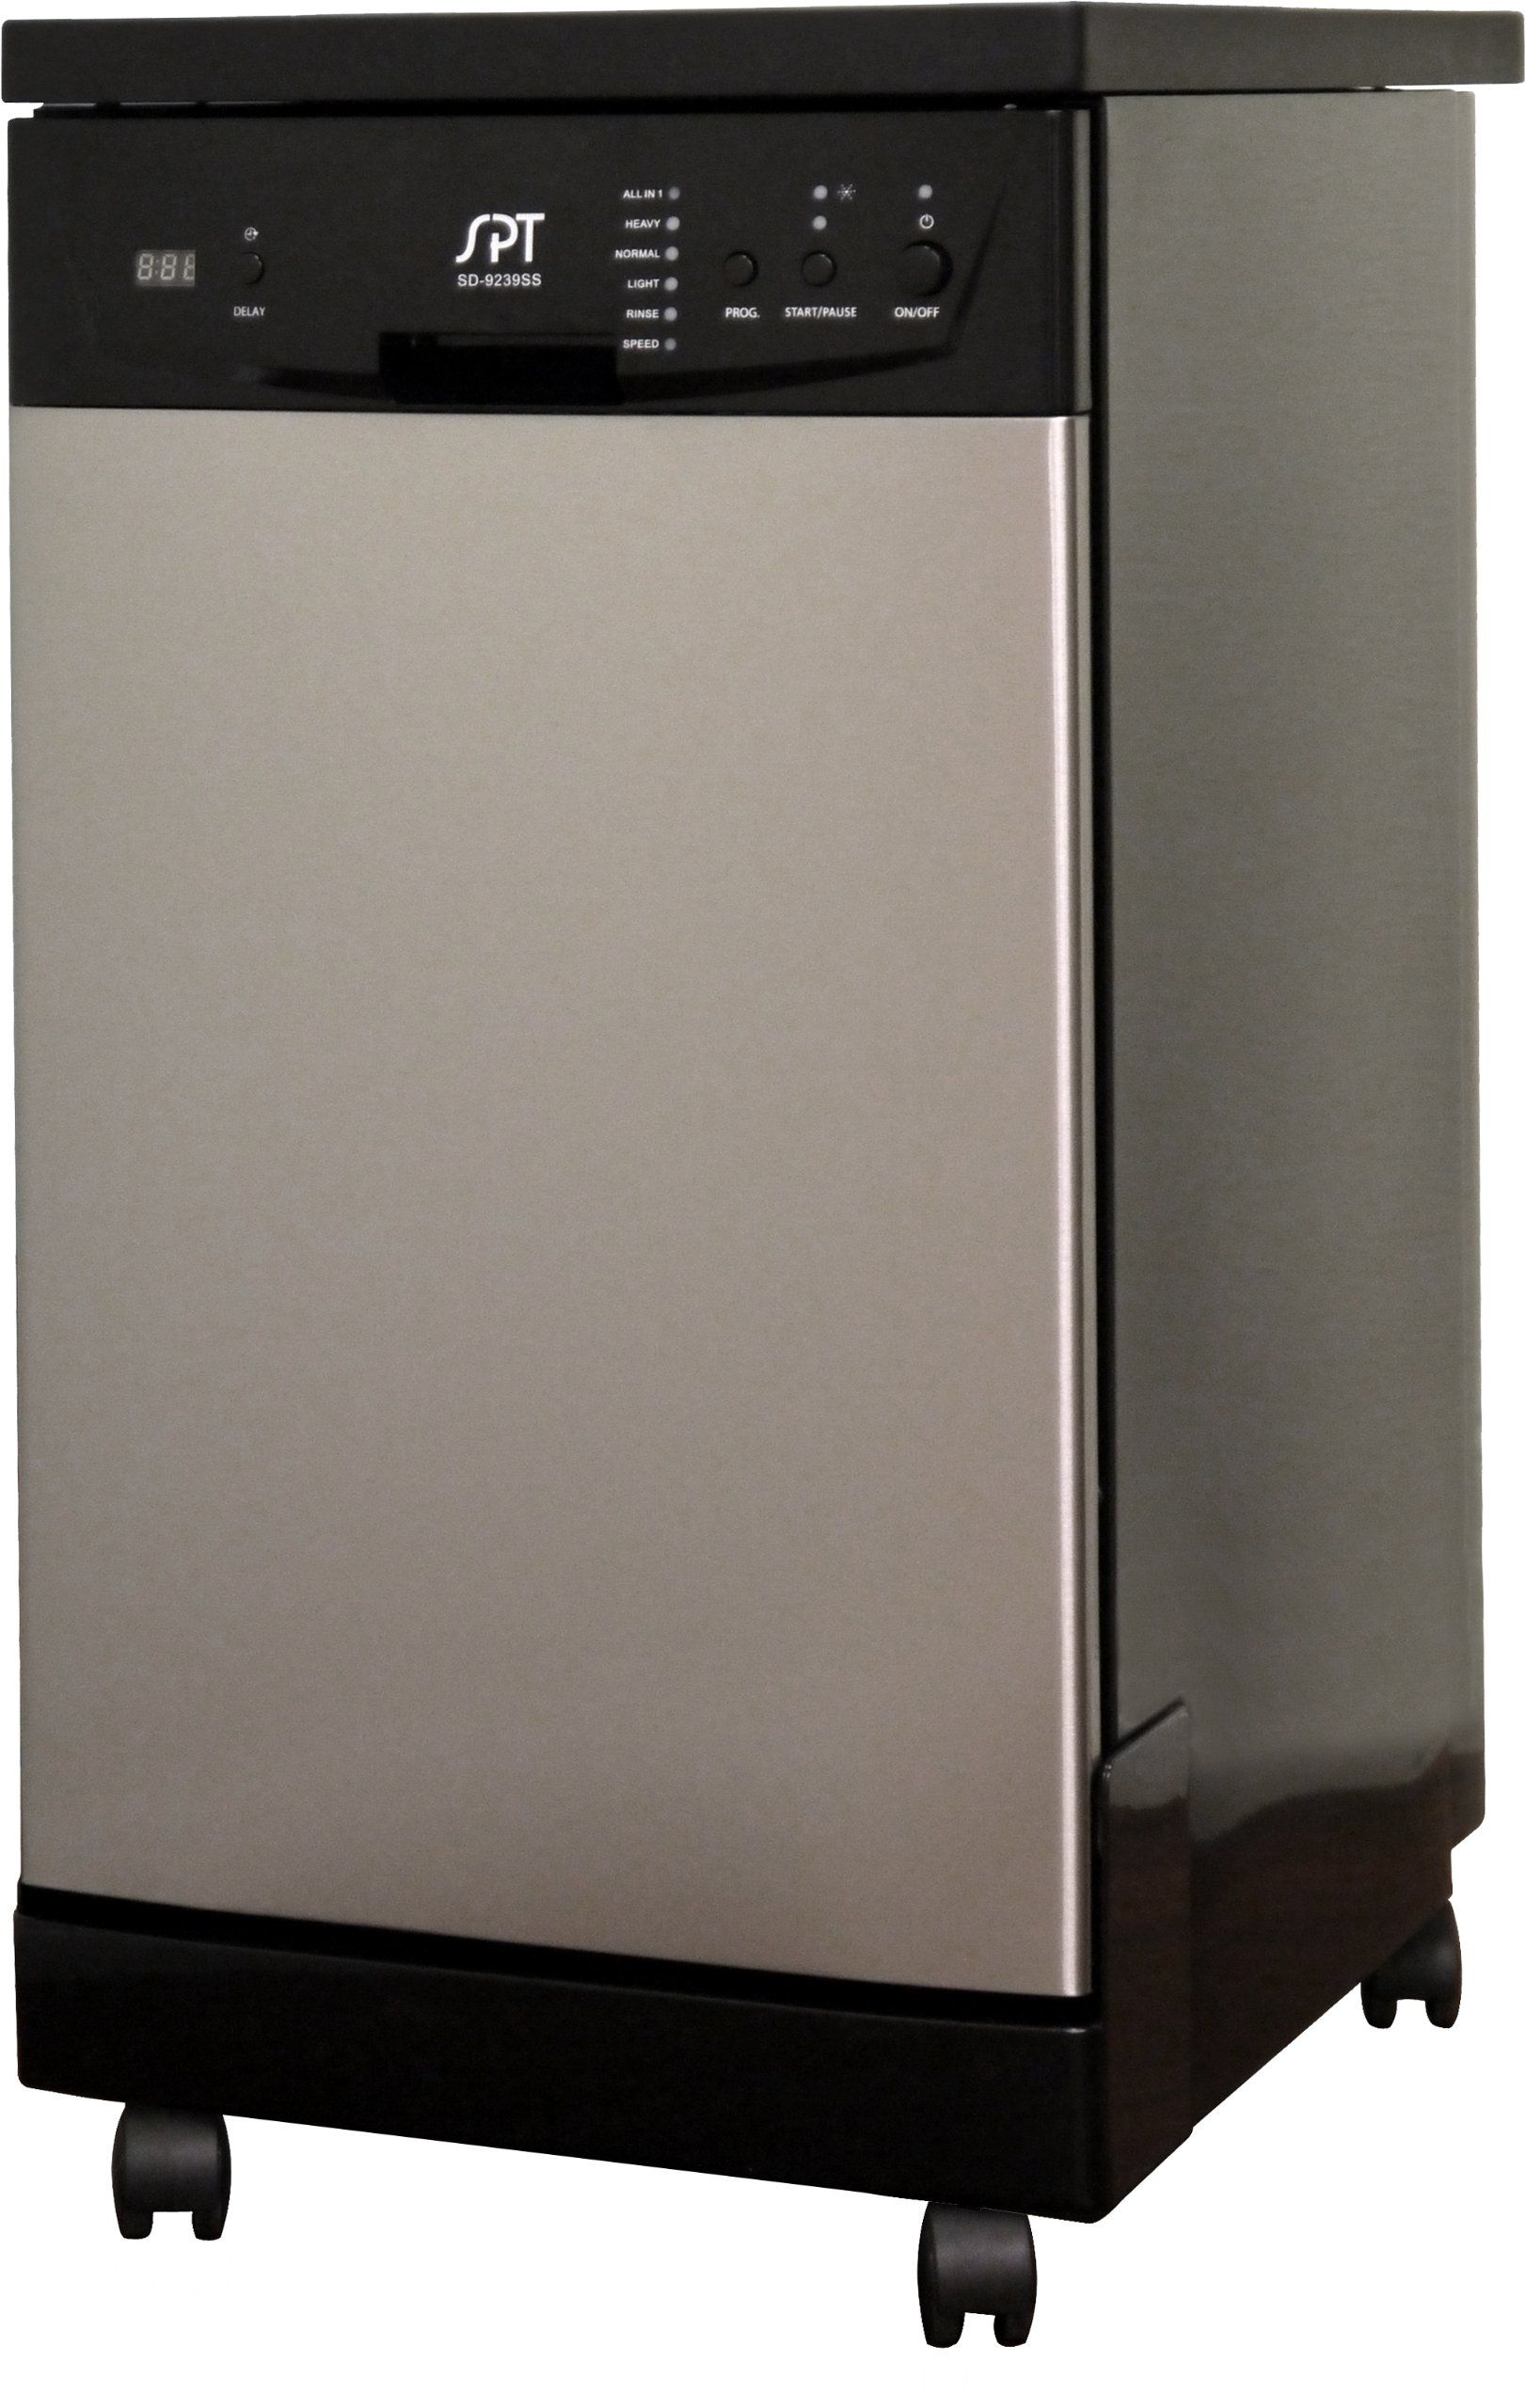 Amazoncom Spt 18 Inch Portable Dishwasher Stainless Steel